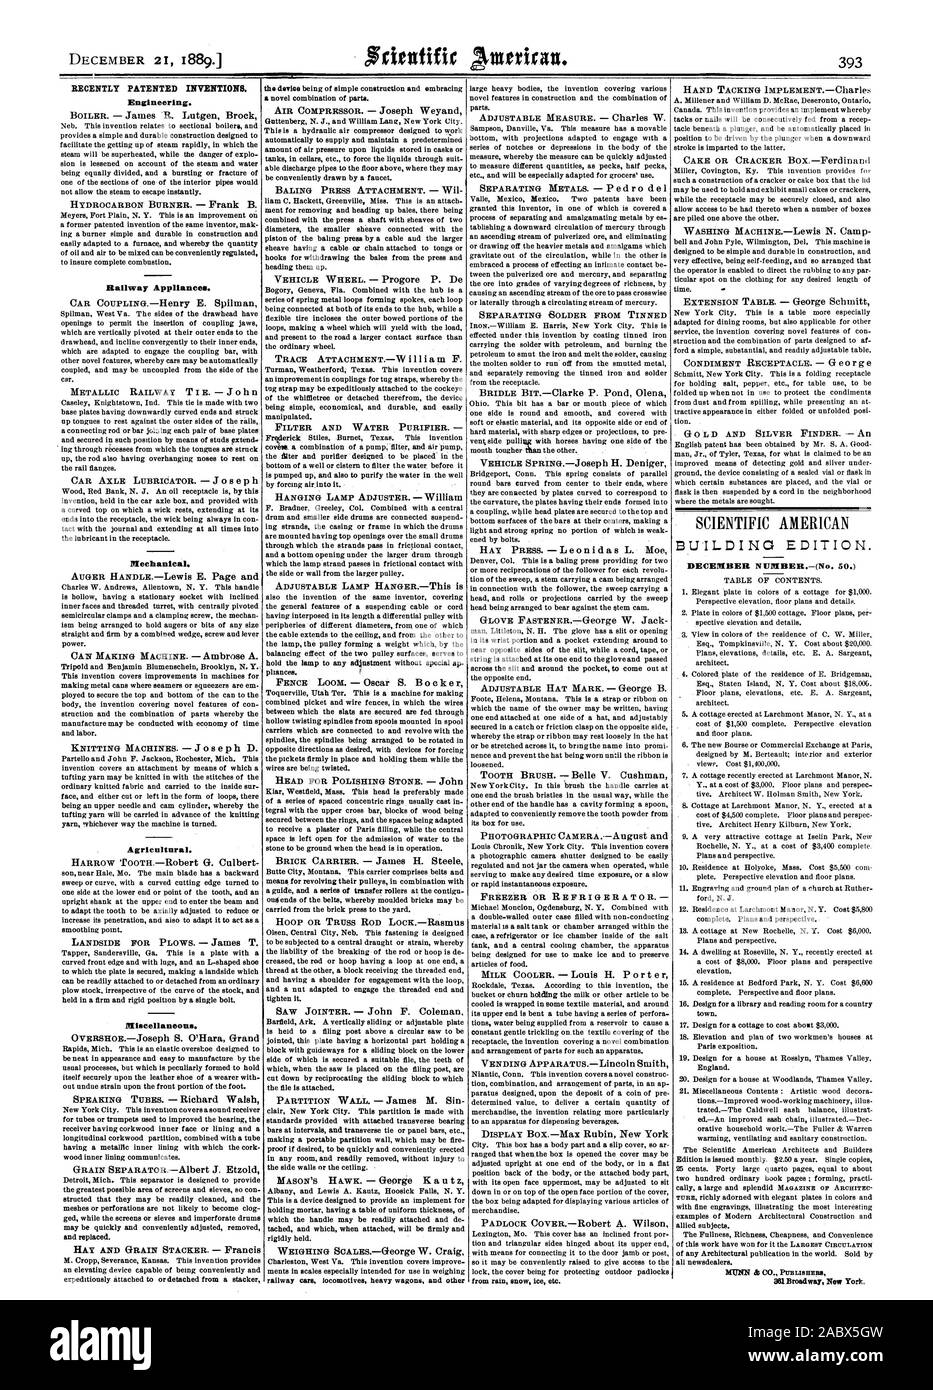 RECENTLY PATENTED INVENTIONS. Engineering. Railway Appliances. CET. Mechanical. Agricultural. Miscellaneous. BUILDING EDITION., scientific american, 1889-12-21 Stock Photo